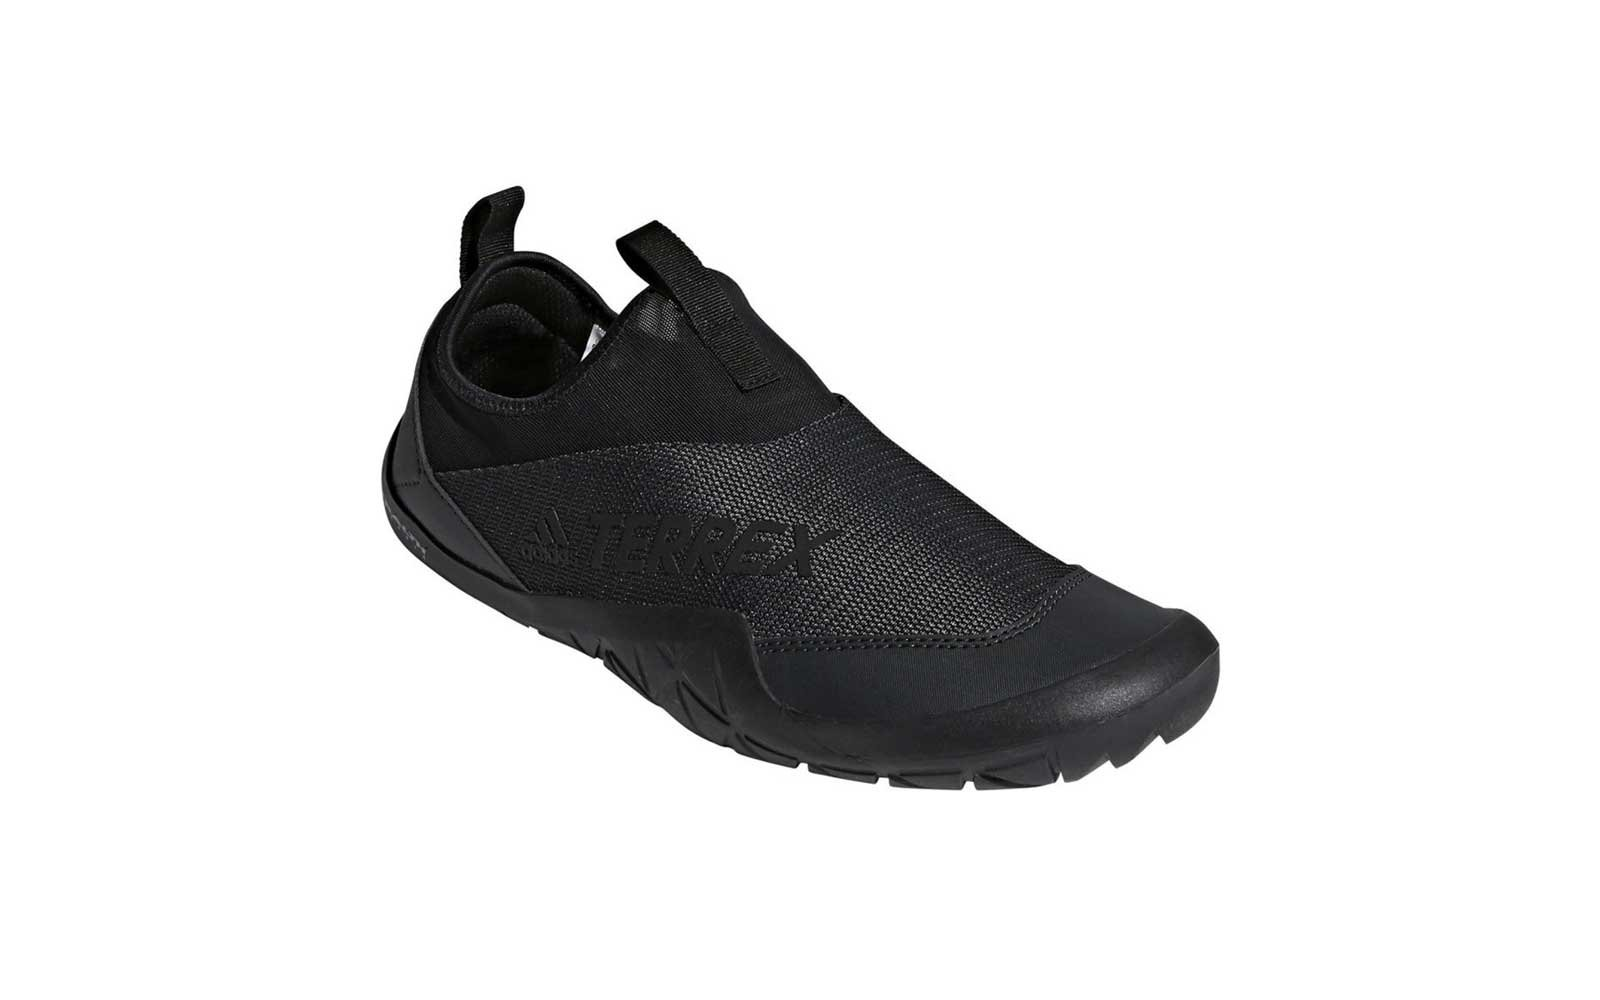 0c2d6816ee22 The Best Men s Water Shoes for 2019